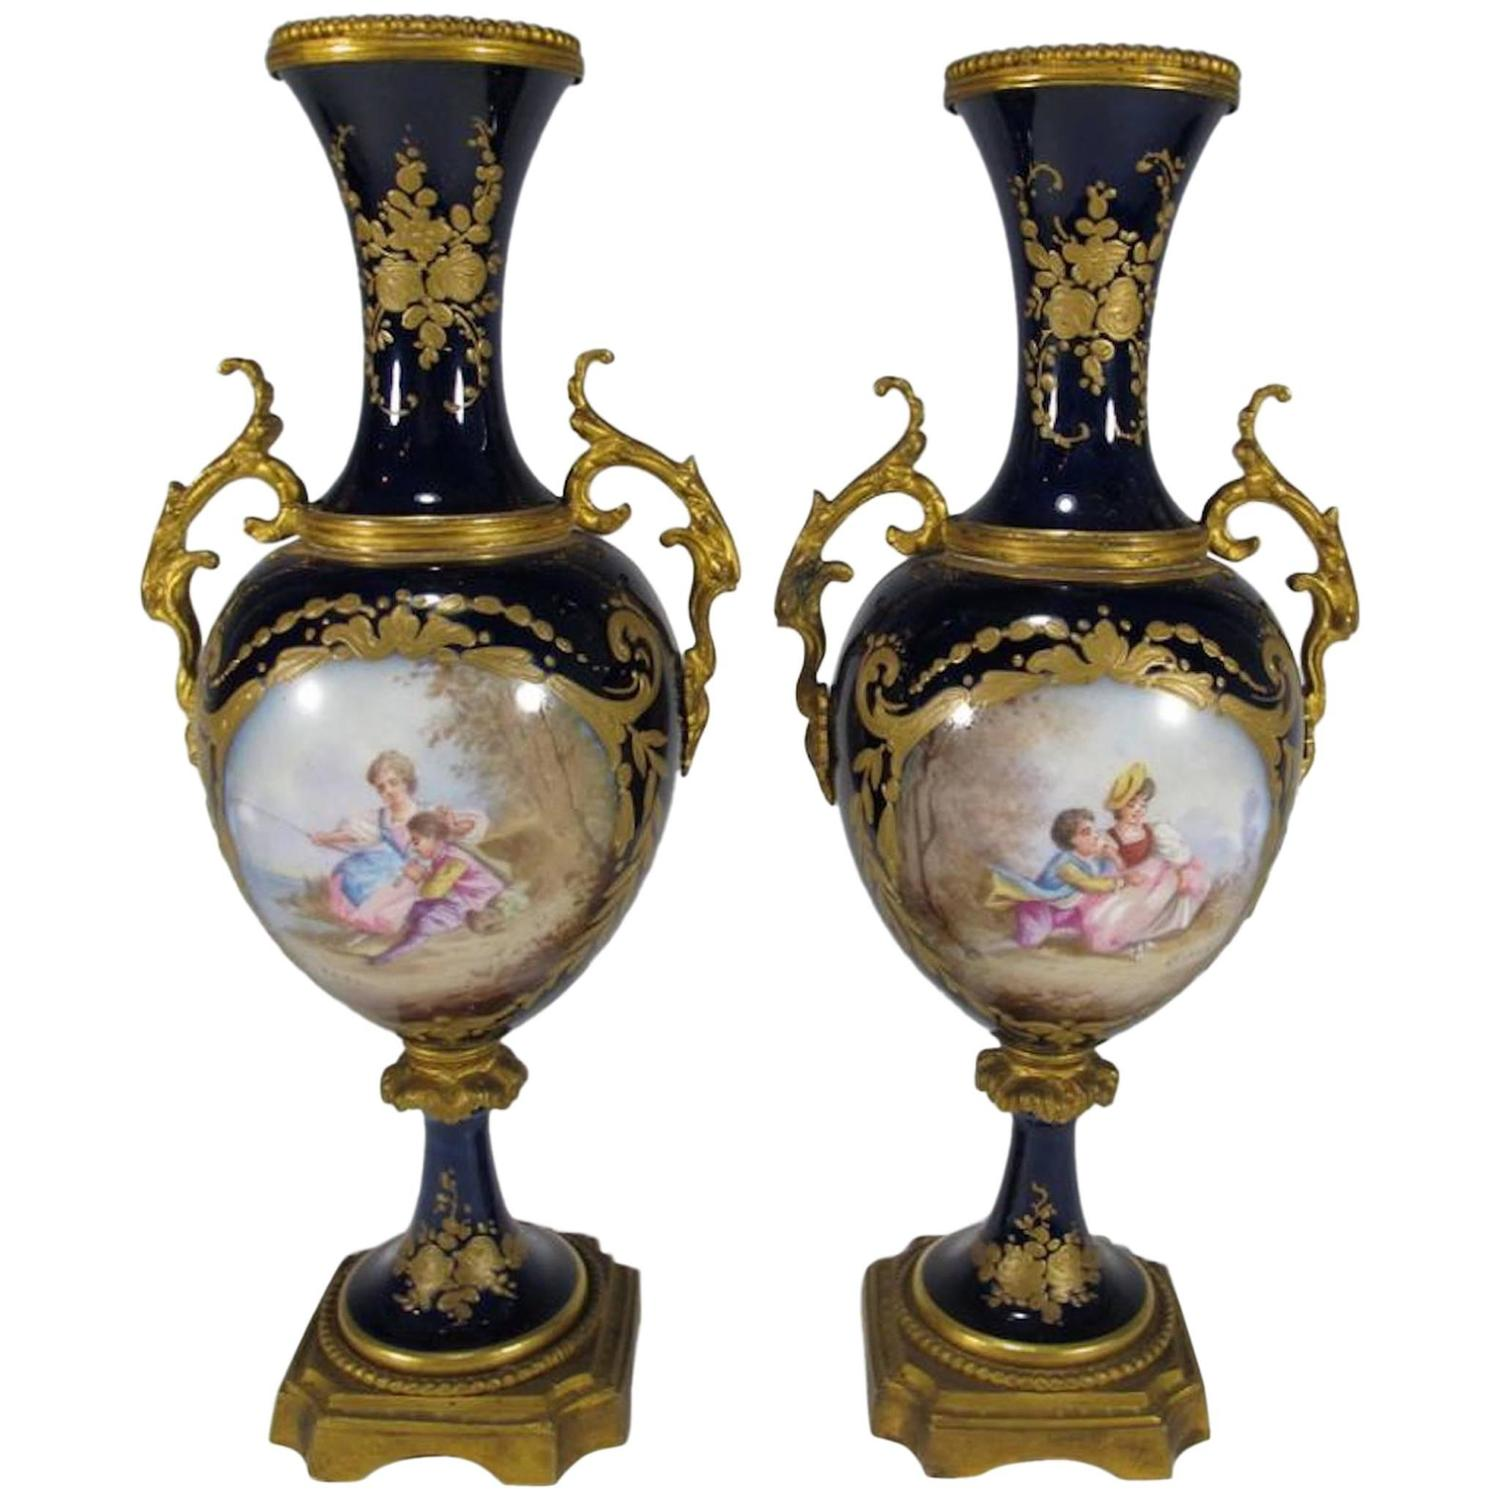 19th century antique french svres pair of porcelain and bronze 19th century antique french svres pair of porcelain and bronze urns for sale at 1stdibs reviewsmspy